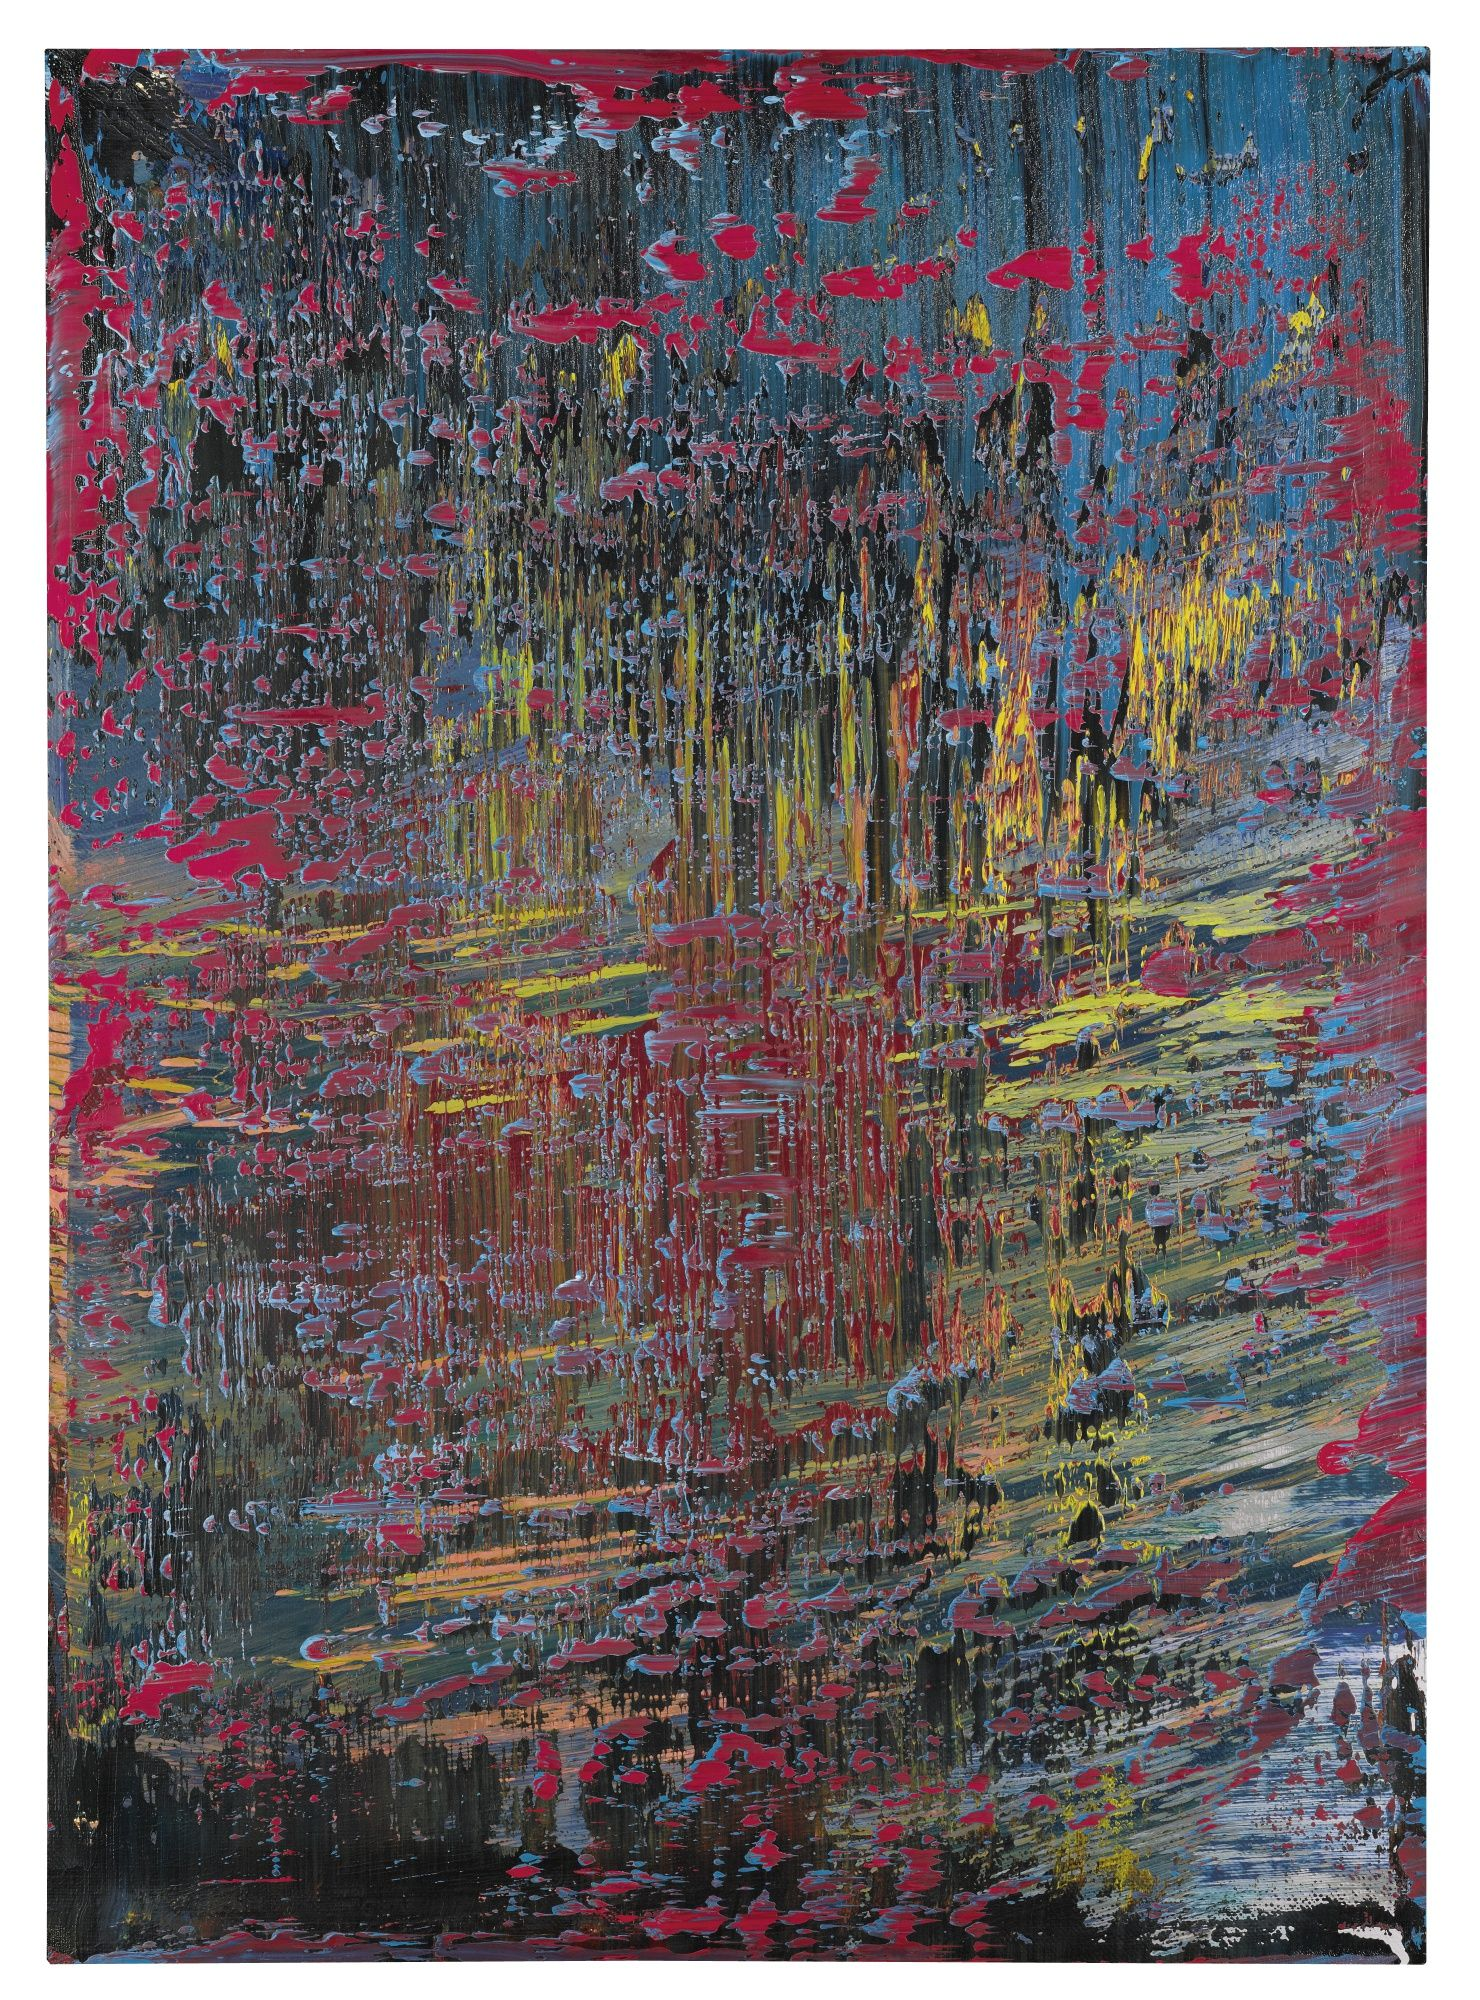 Abstrakte Bilder Gerhard Richter Gerhard Richter B 1932 Abstraktes Bild Signed Dated 1988